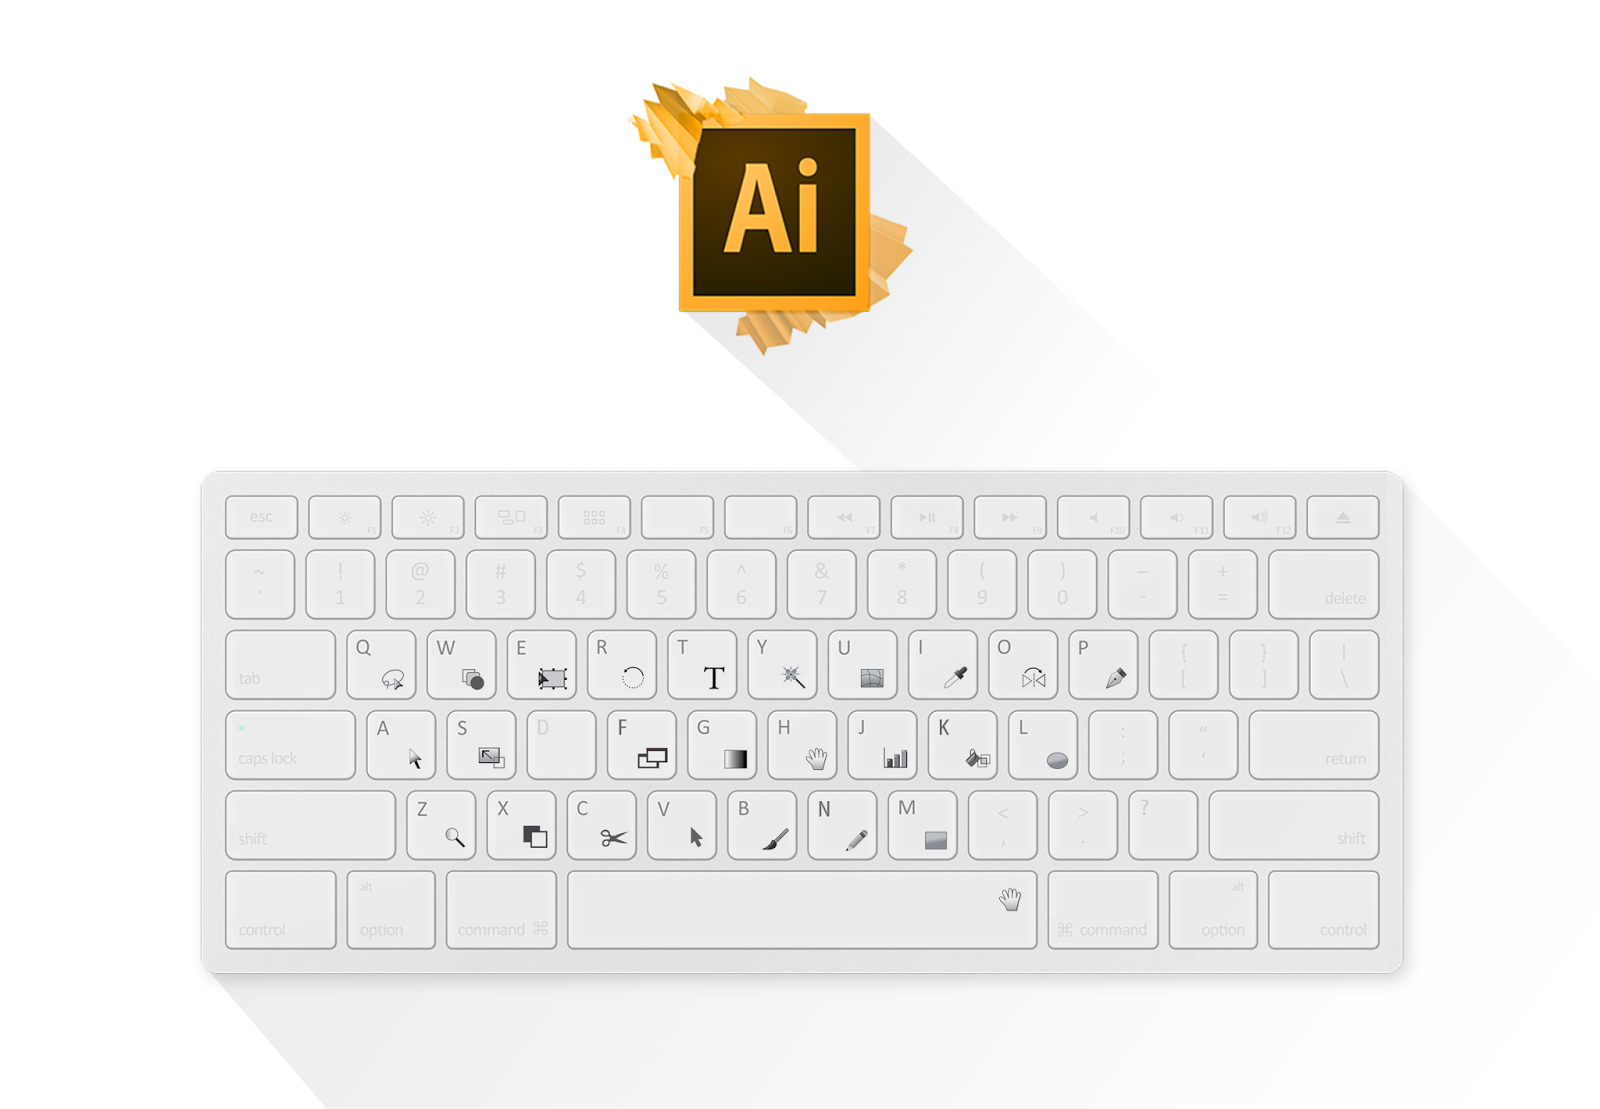 Default keyboard shortcuts in Adobe Illustrator